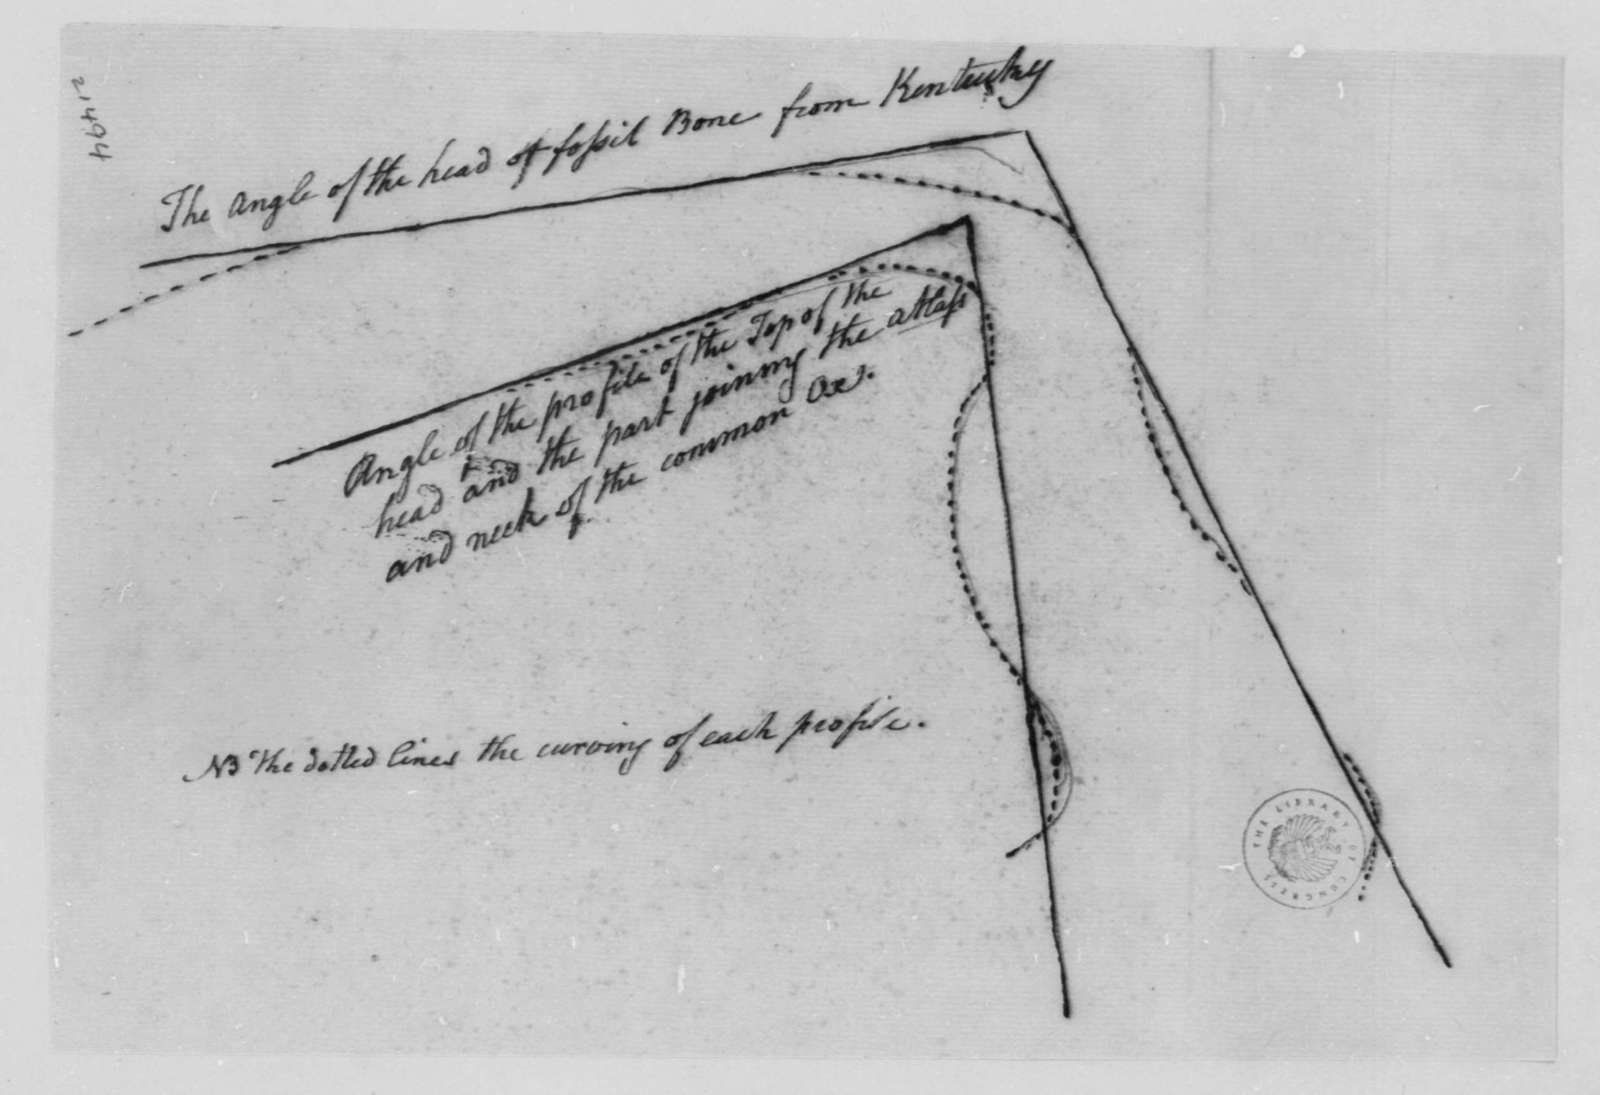 Charles Willson Peale to Thomas Jefferson, July 18, 1802, Drawings and Sketches